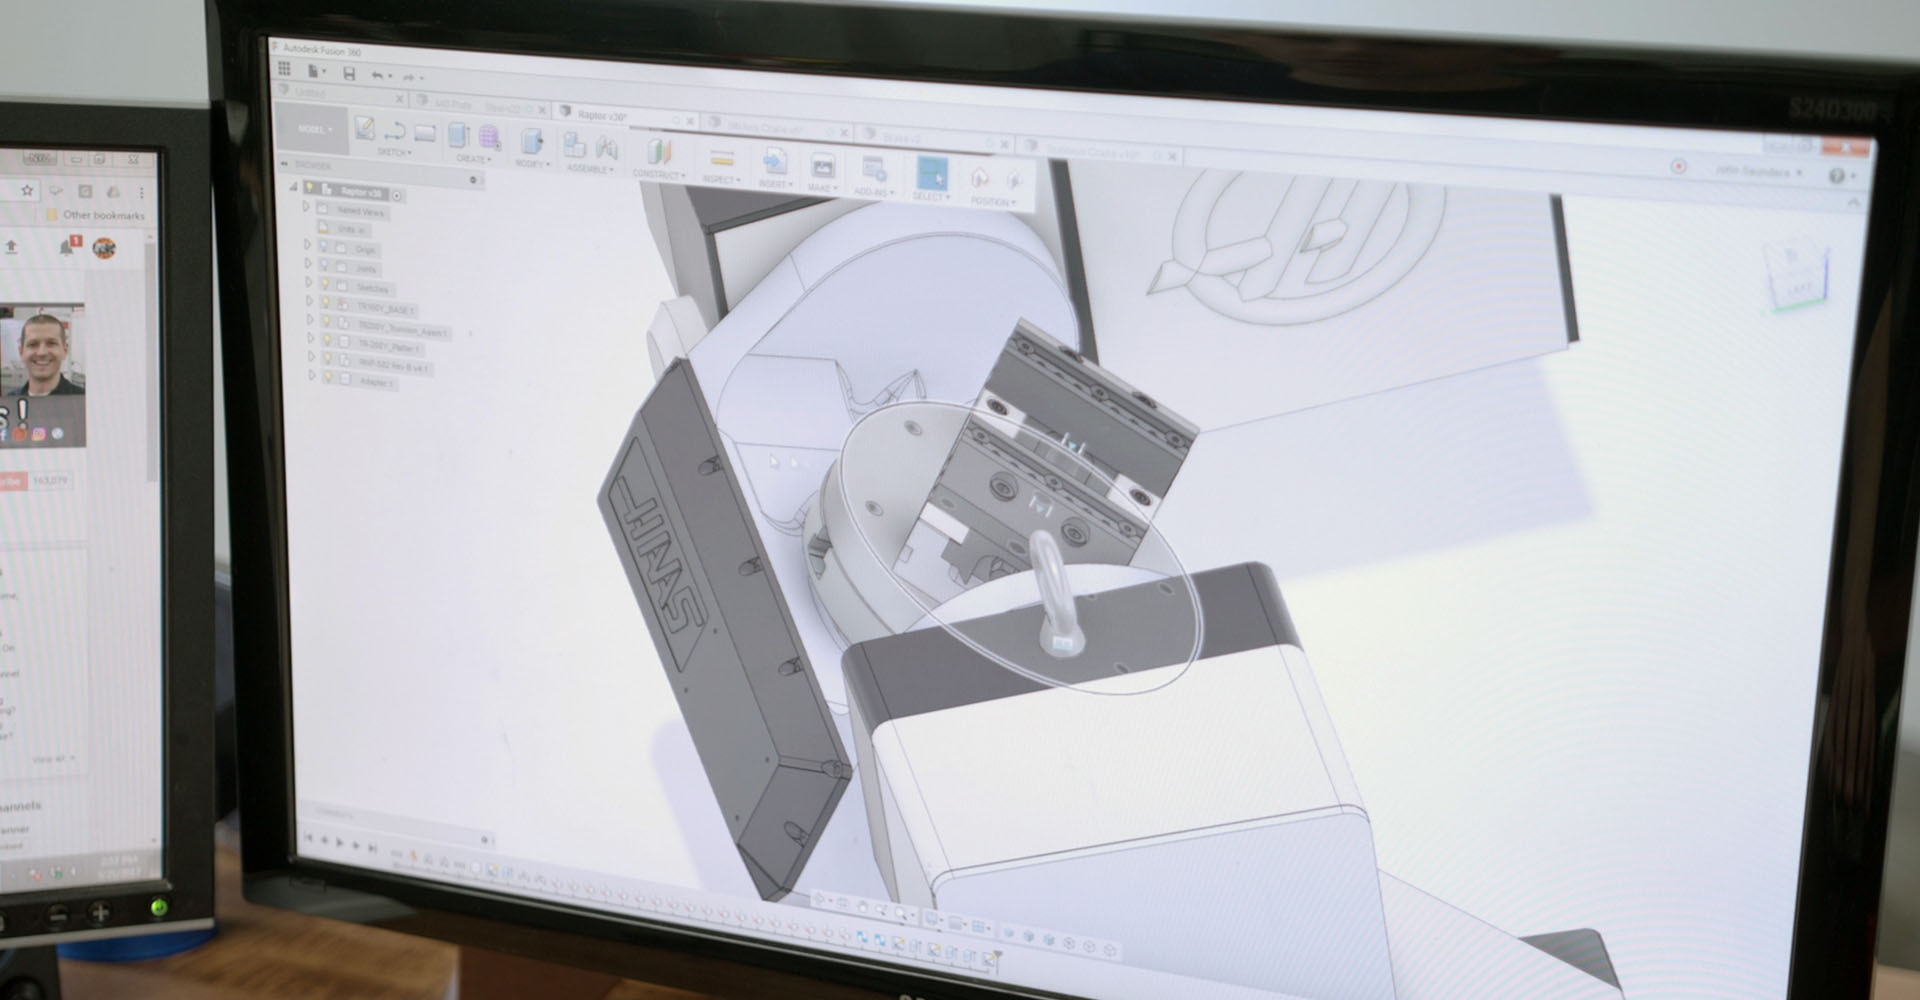 Fusion 360 cloud-based CADCAM software